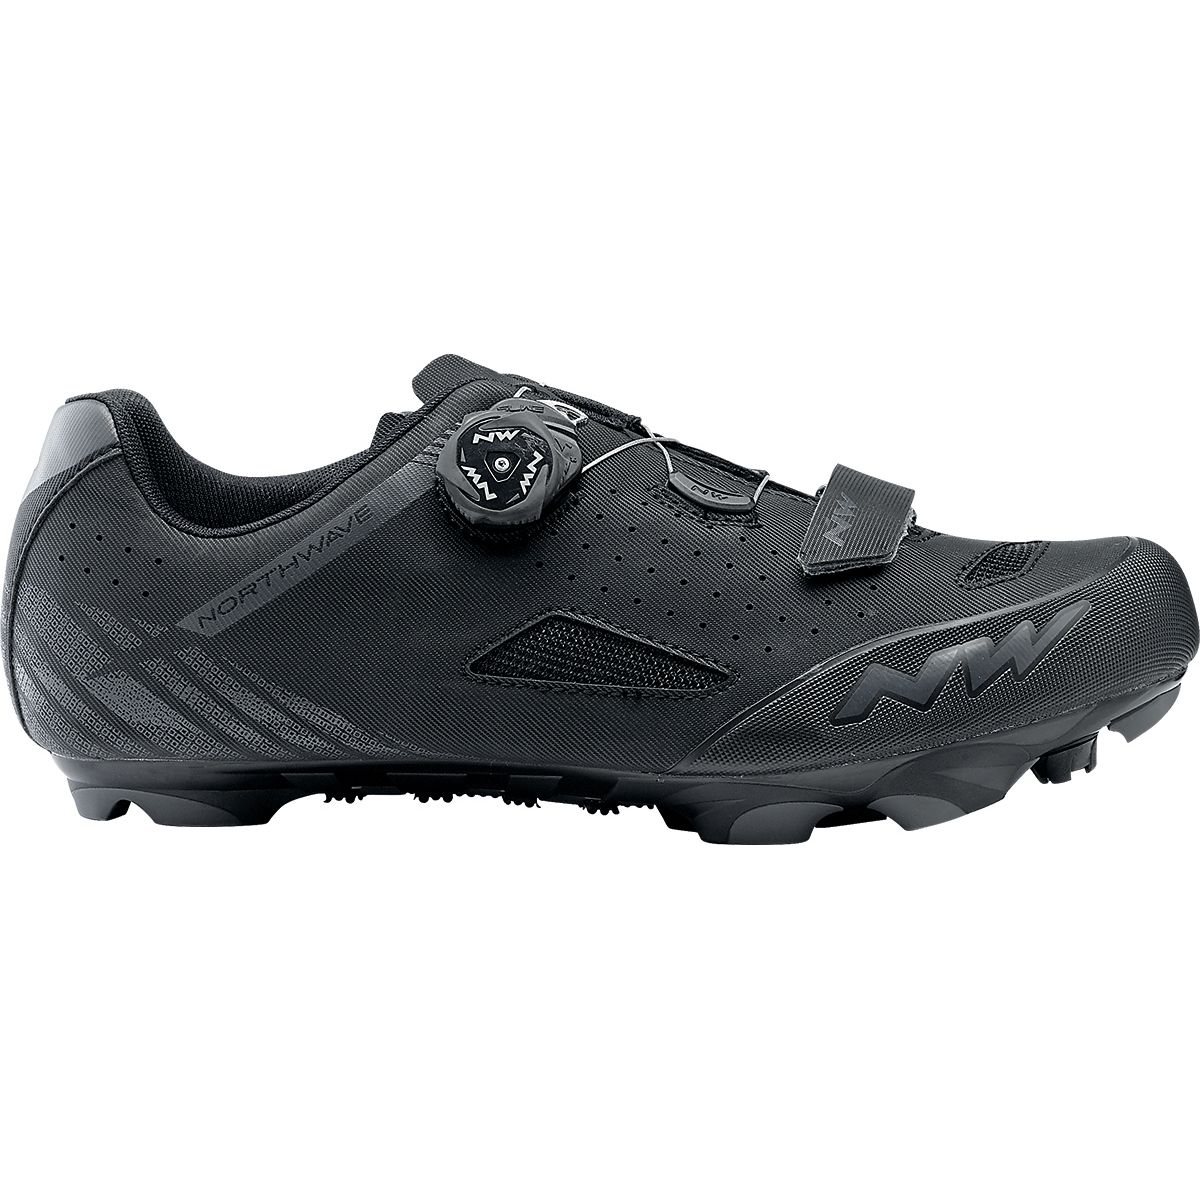 Northwave Origin Plus Cycling Shoe - Men's